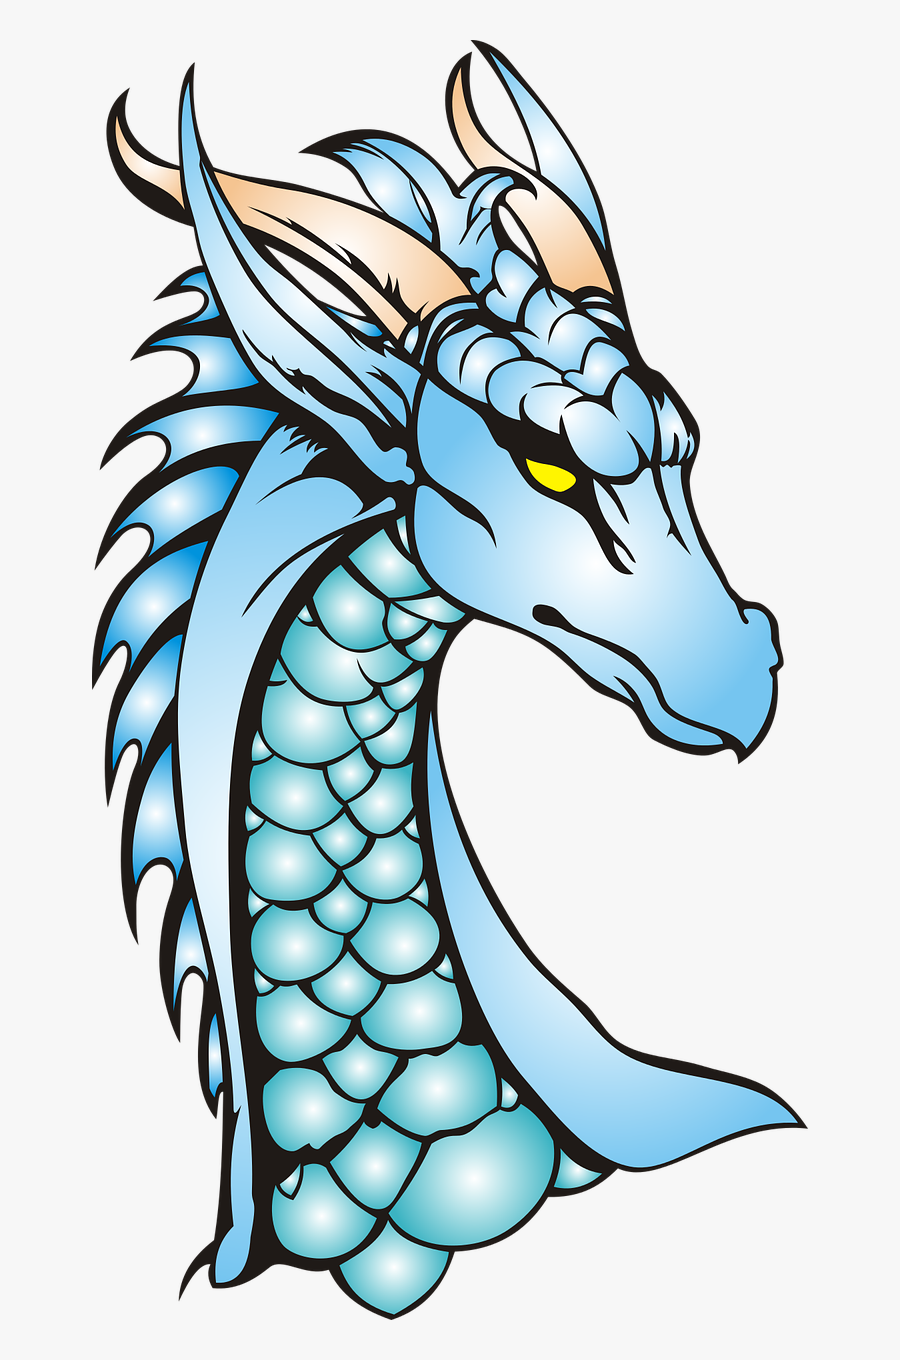 Dragon Neck The Head Of The Free Picture - Dragon Head And Neck, Transparent Clipart